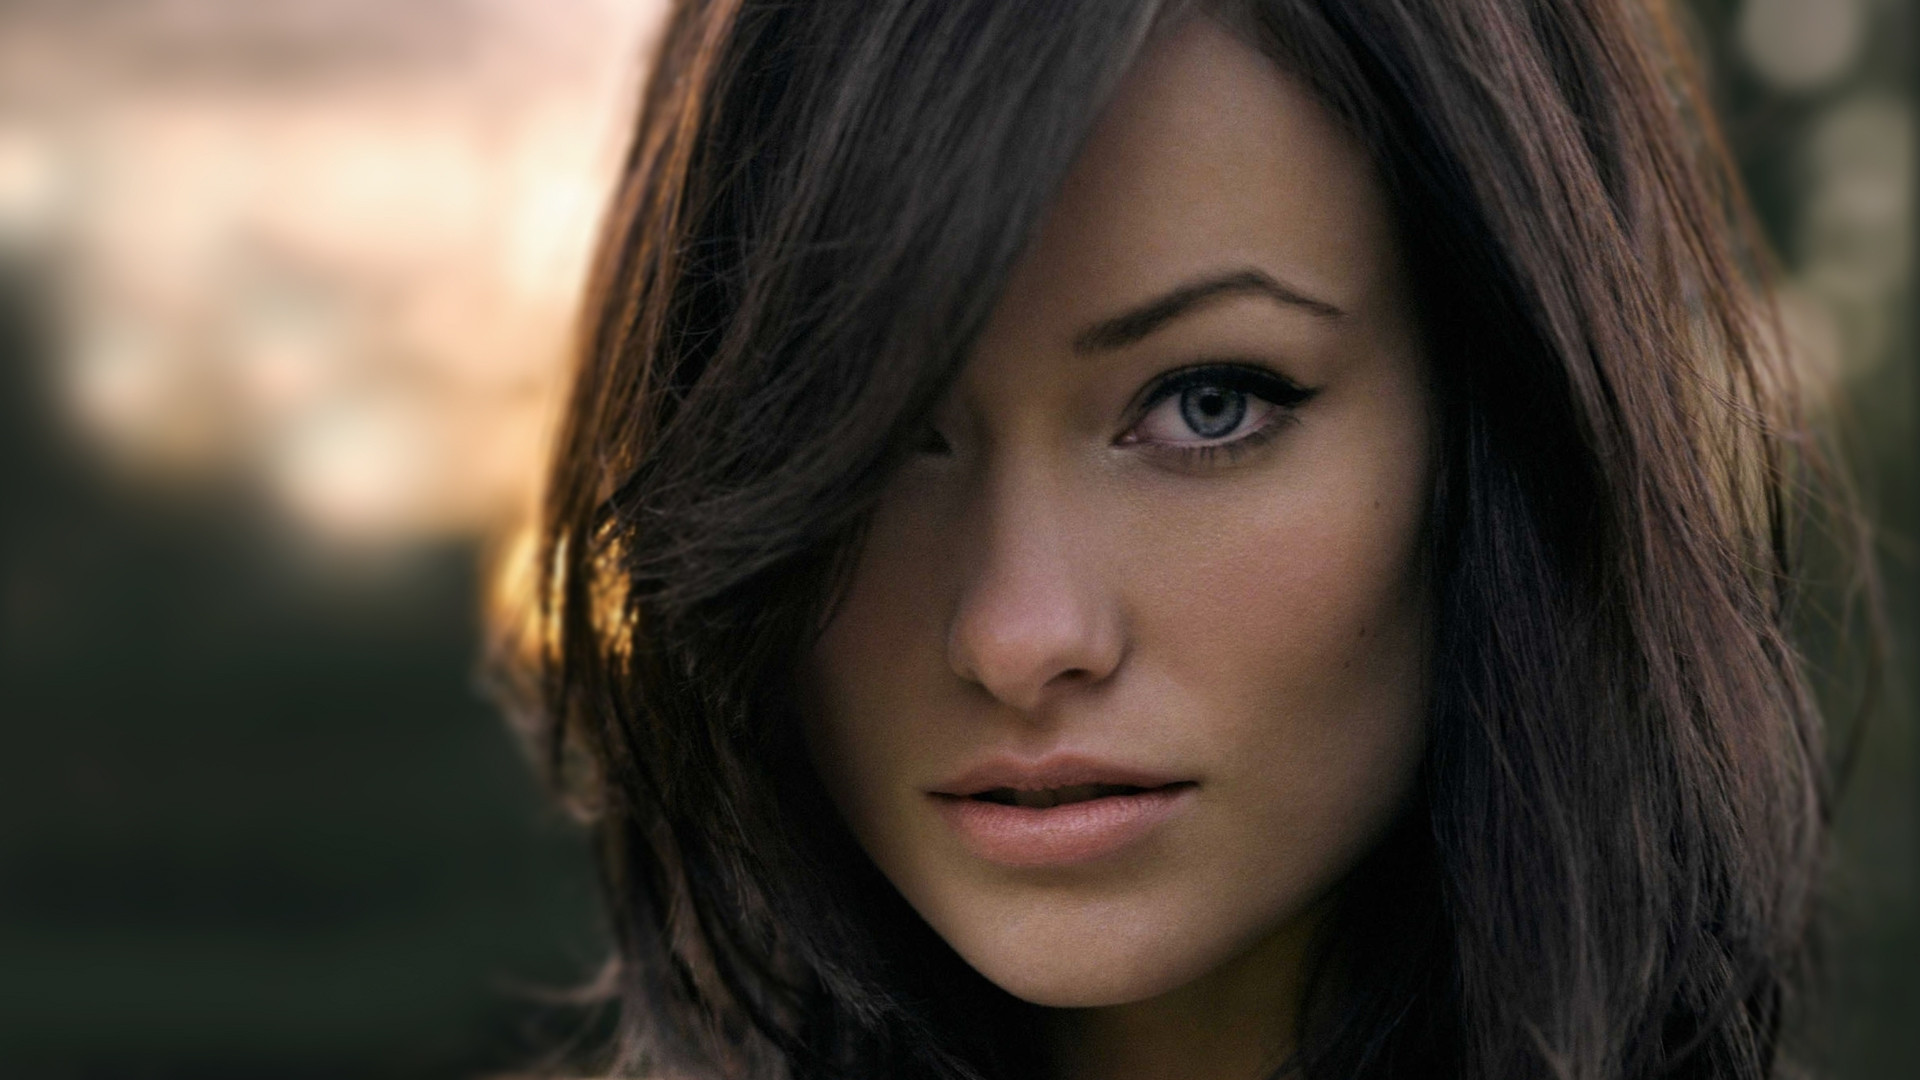 wallpaper the incredibly sexy Olivia Wilde 1920x1080 wallpapers 1920x1080